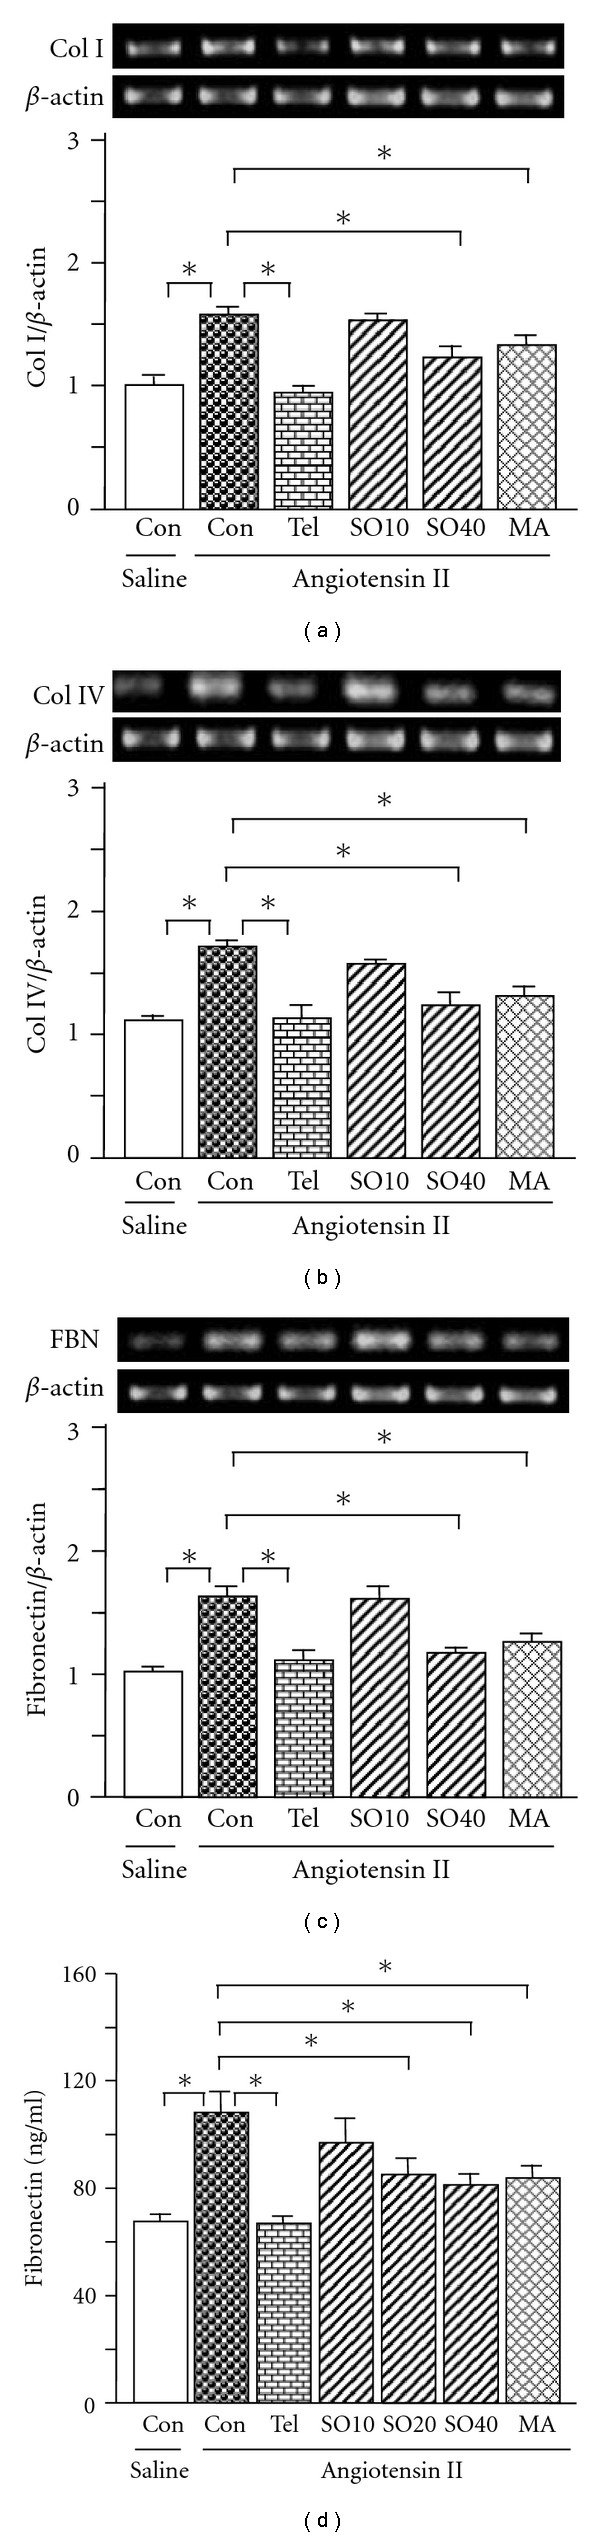 Expression of collagen (Col) I (a), Col IV (b), fibronectin (c) mRNAs and fibronectin protein (d) in rat mesangial cells. SO (SO10: 10; SO20: 20 and SO40: 40 μ g/ml), MA (25 μ M) or telmisartan (Tel. 10 μ M) was added 1 h before mesangial cells were treated with angiotensin II (10 −6 M). Twenty-four hours later total RNA was extracted from the mesangial cells using TRIzol. The relative levels of specific mRNAs were determined by RT-PCR. Results were normalized to β -actin. In a parallel experiment, the medium was collected after mesangial cells were treated with the test agents in combination with angiotensin II. fibronectin protein was determined by commercial ELISA kit according to the manufacturer's instructions. All values are means ± SEM ( n = 3, each group). * P